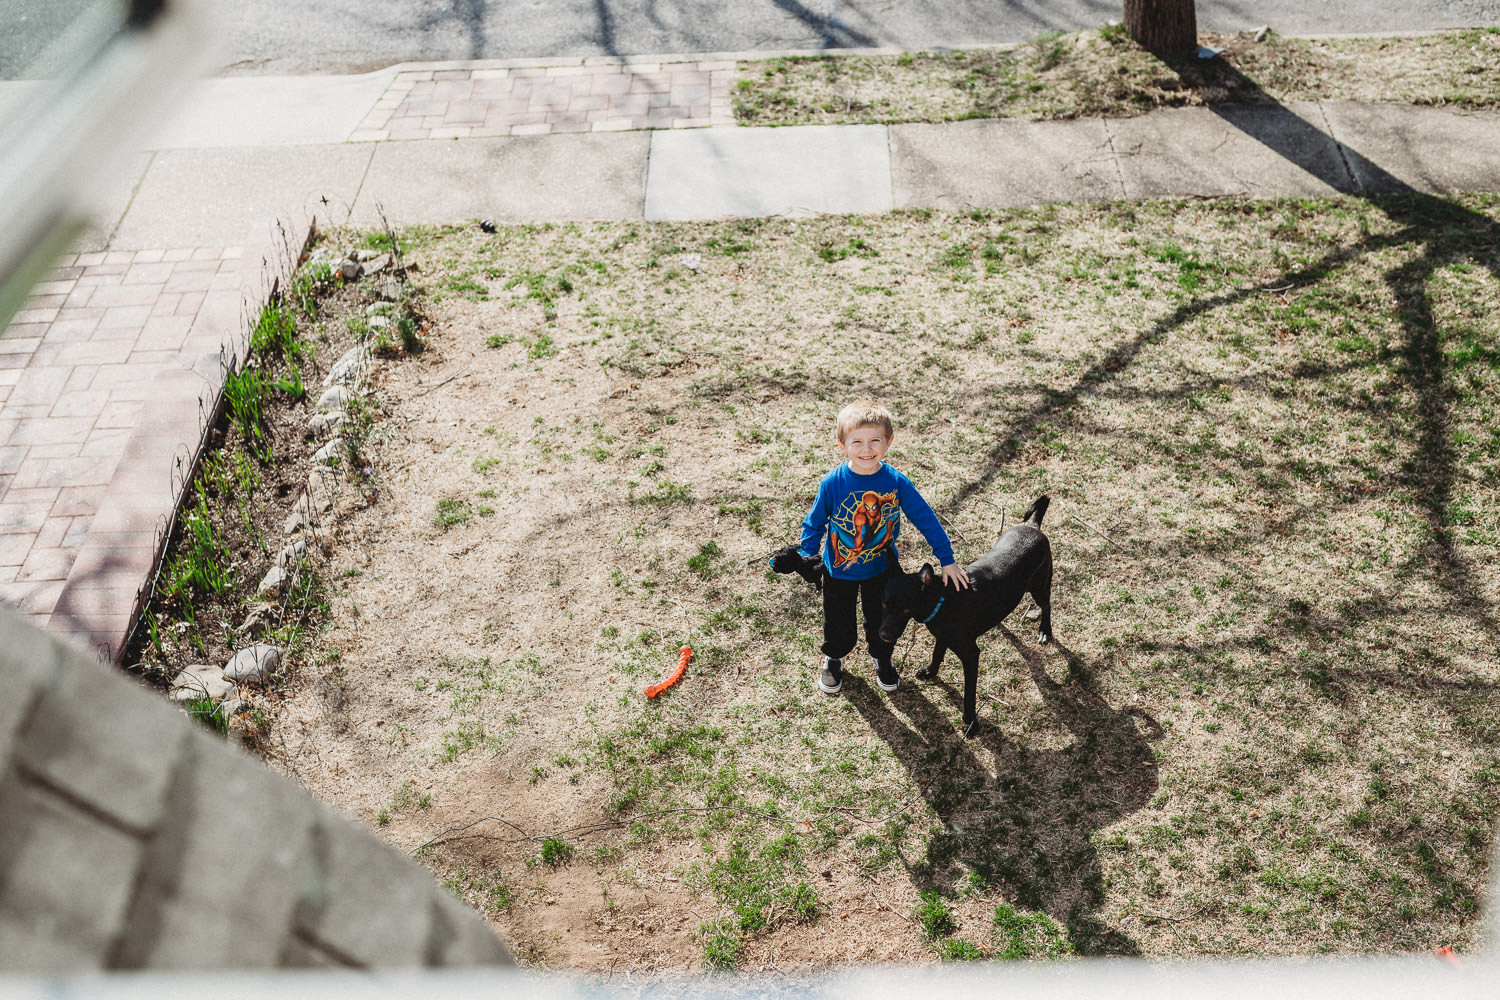 A little boy and his dog on the front lawn.